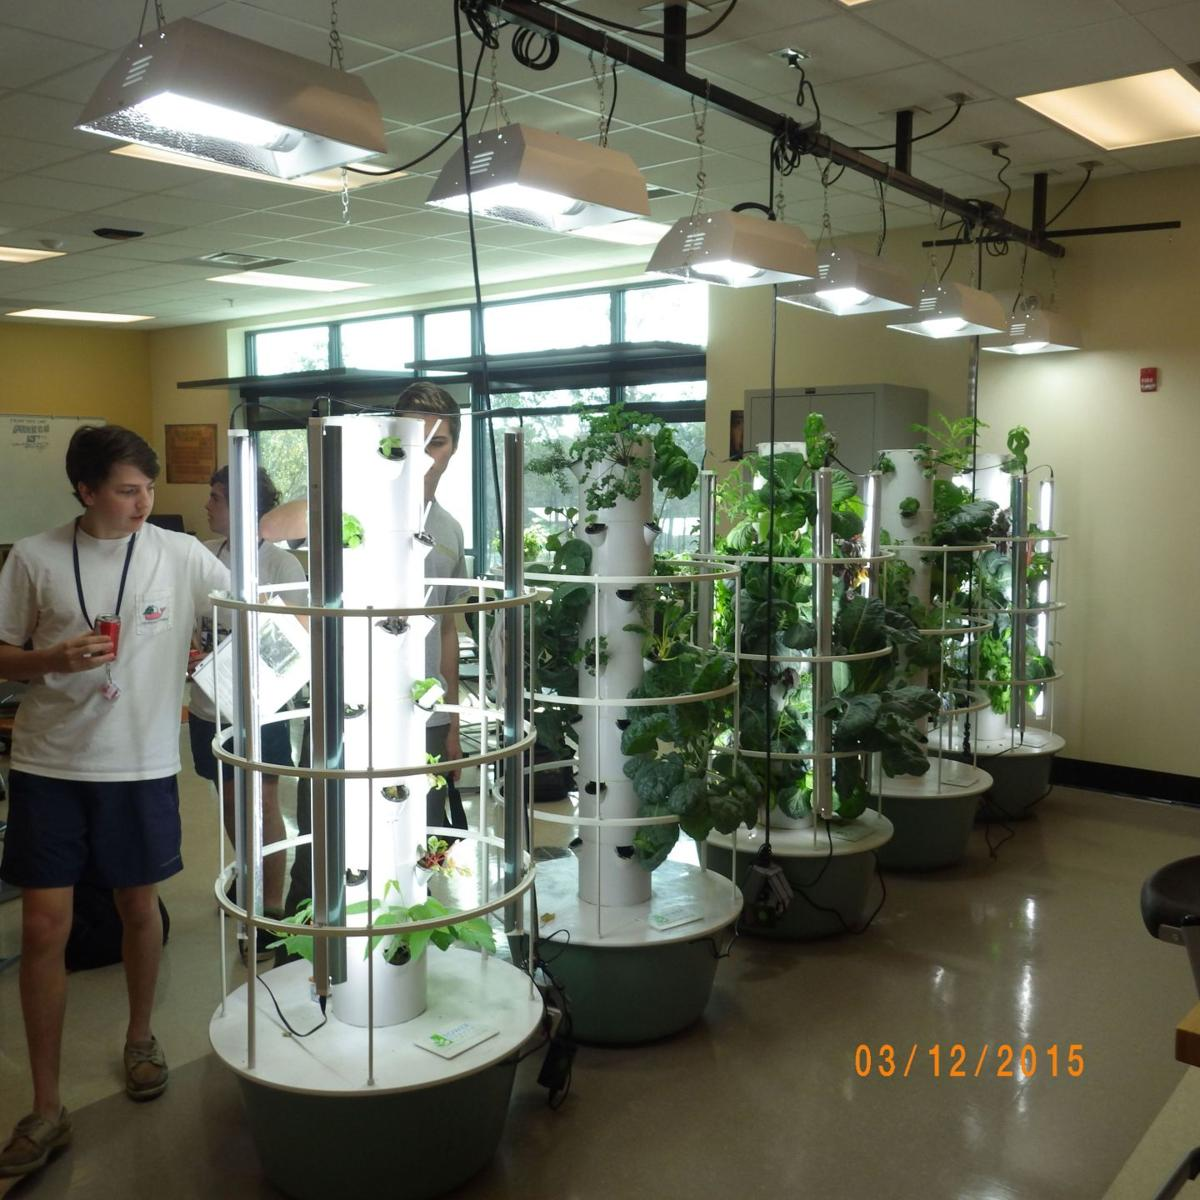 Wando students rooted Horticulture program growing